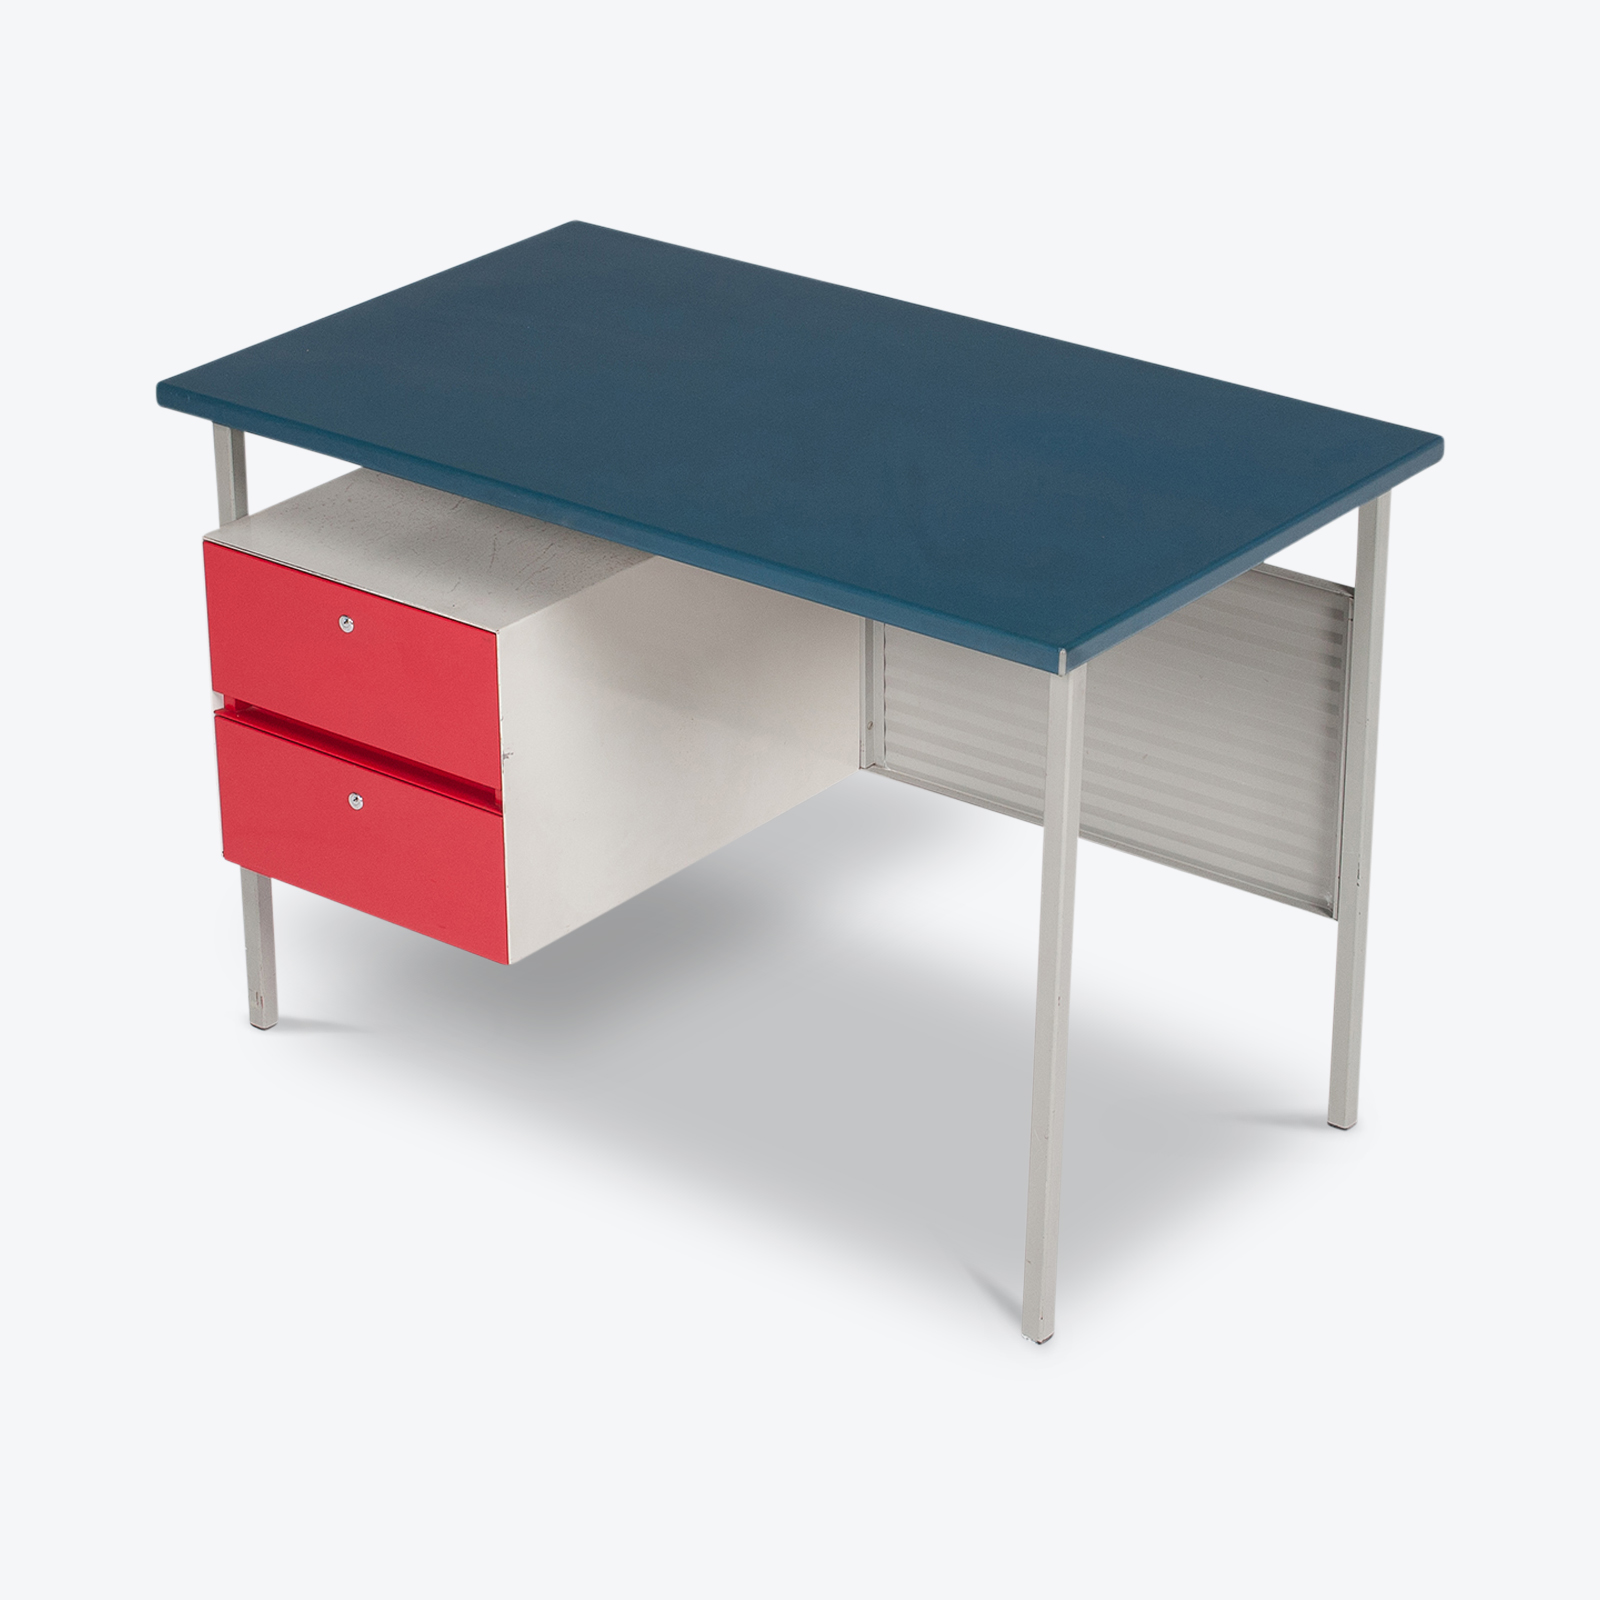 3803 Industrial Desk By Andre Cordemeyer For Gispen With Blue Vinyl Top And Red Enamelled Drawers, 1950s, The Netherlands Hero